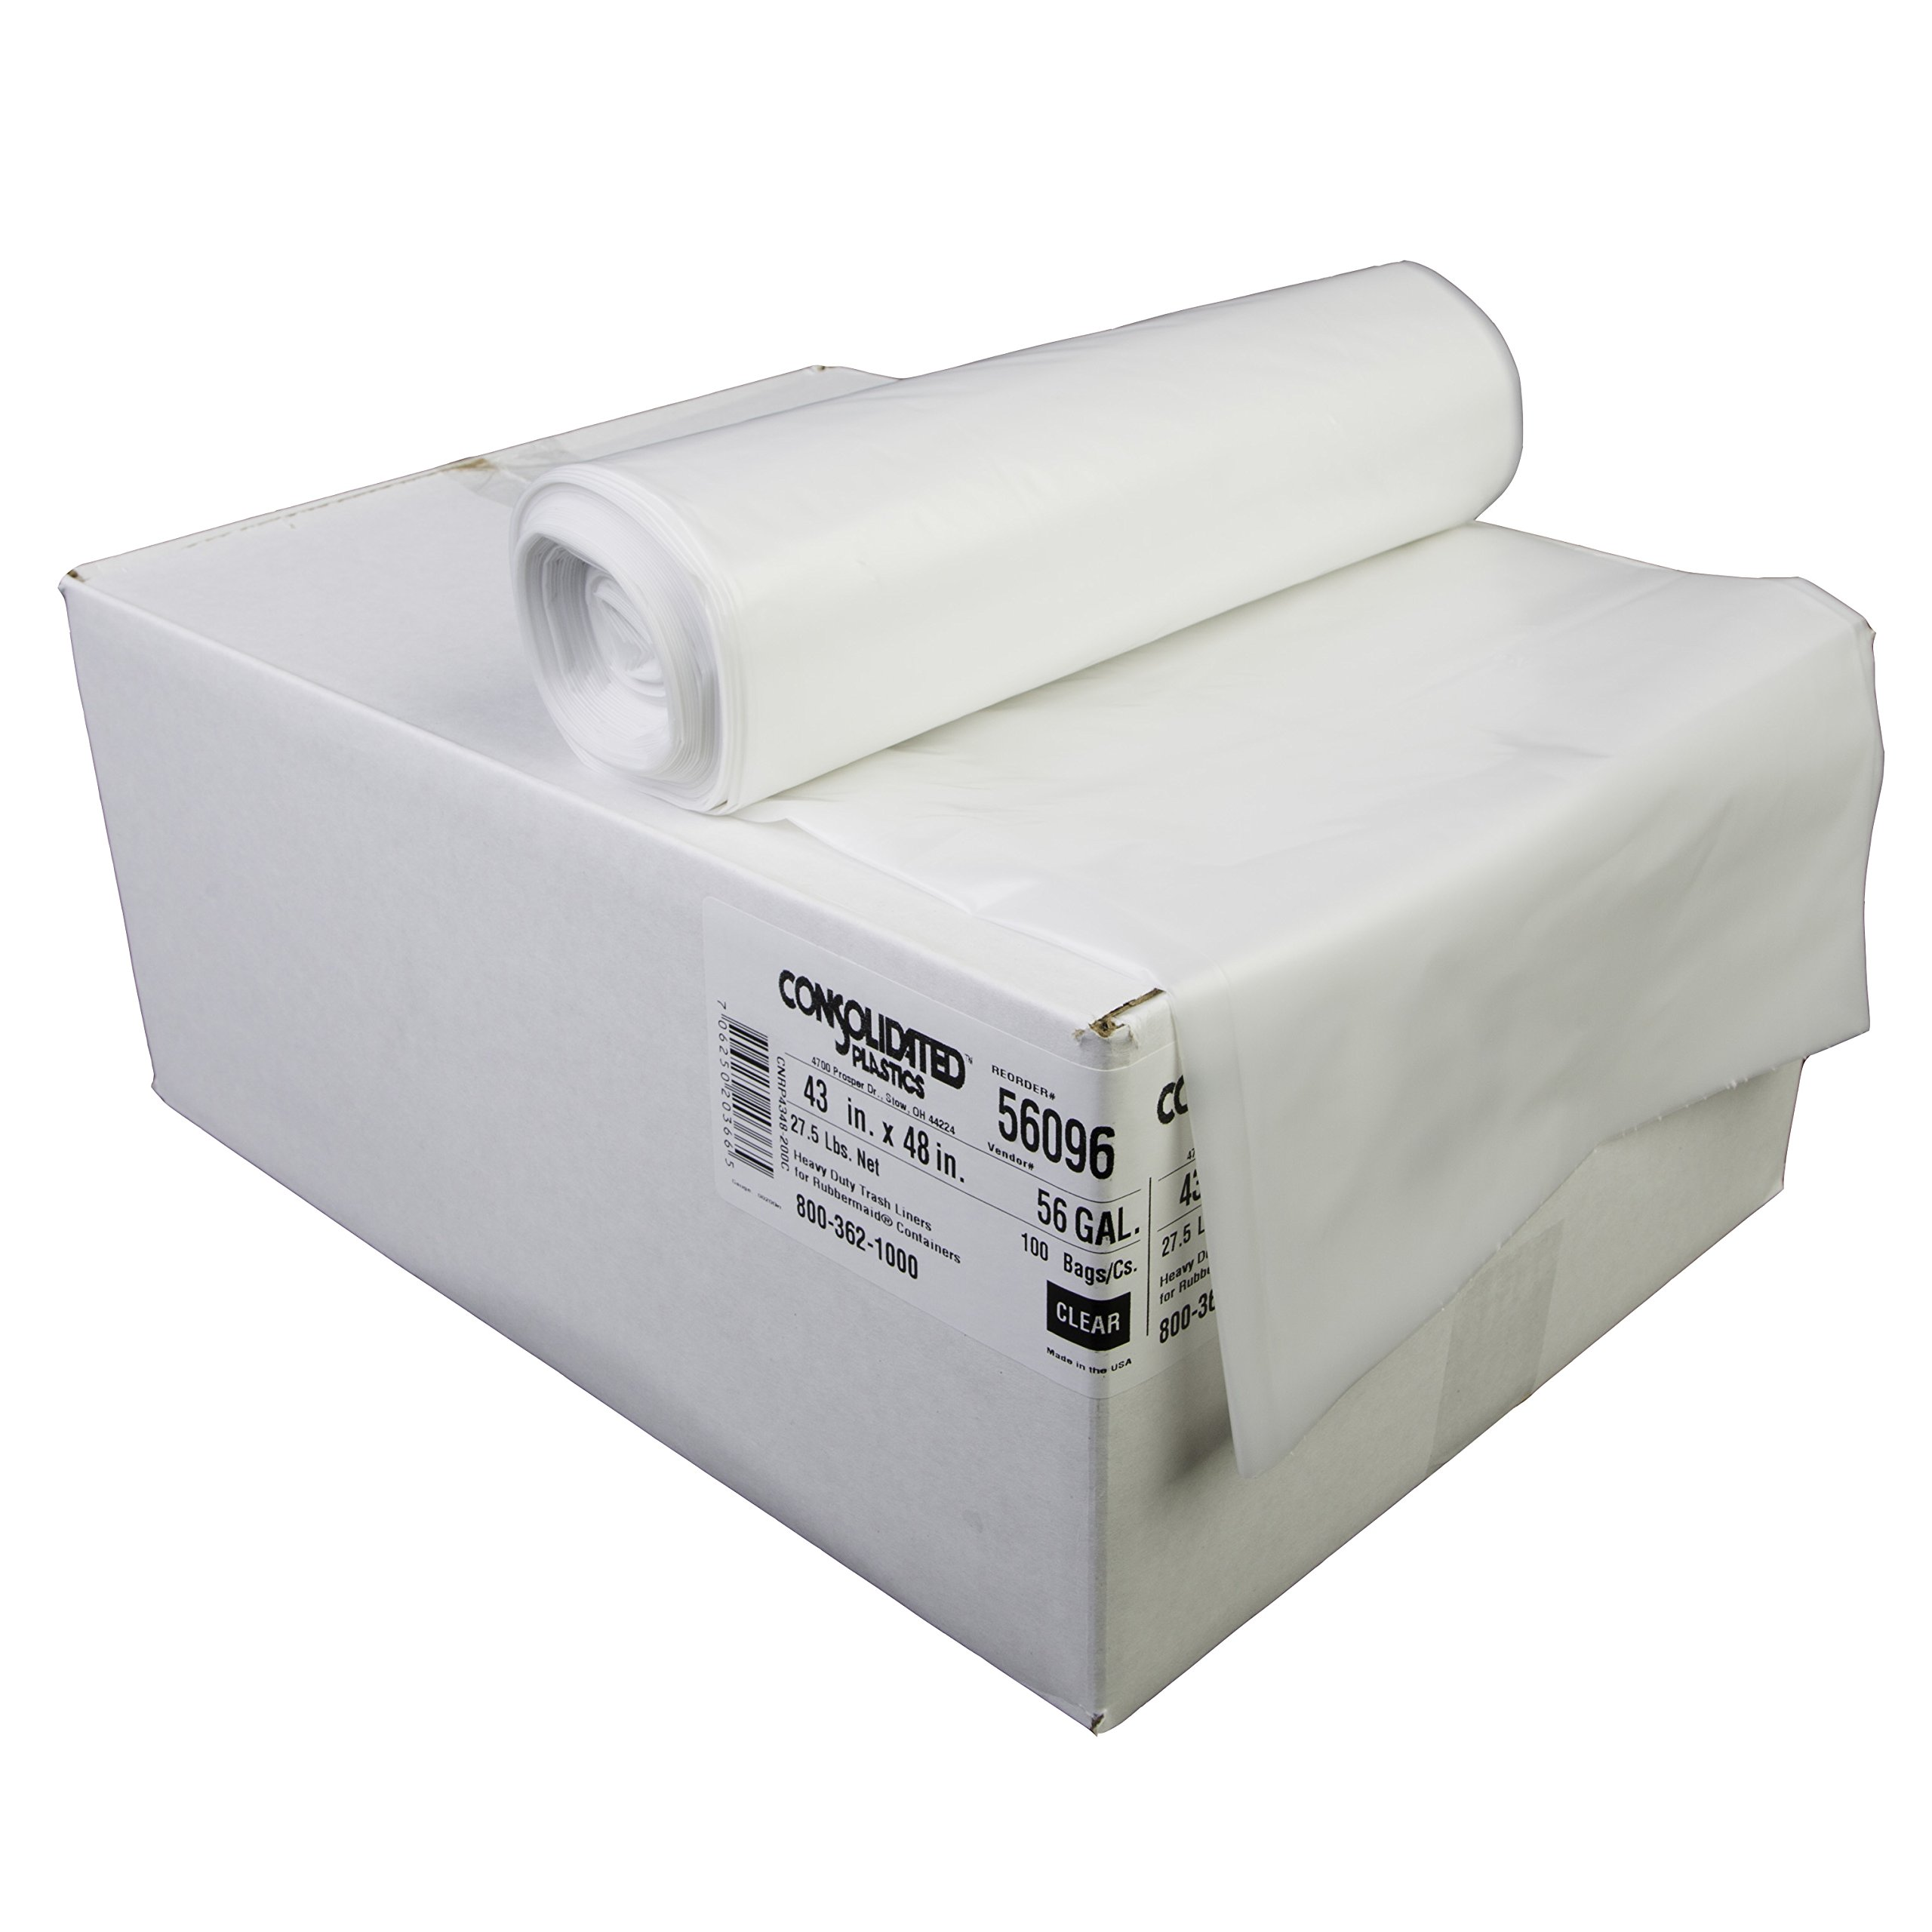 Consolidated Plastics 56 Gallon Heavy Duty Trash Liners, 43'' x 48'', Clear (Case of 100)